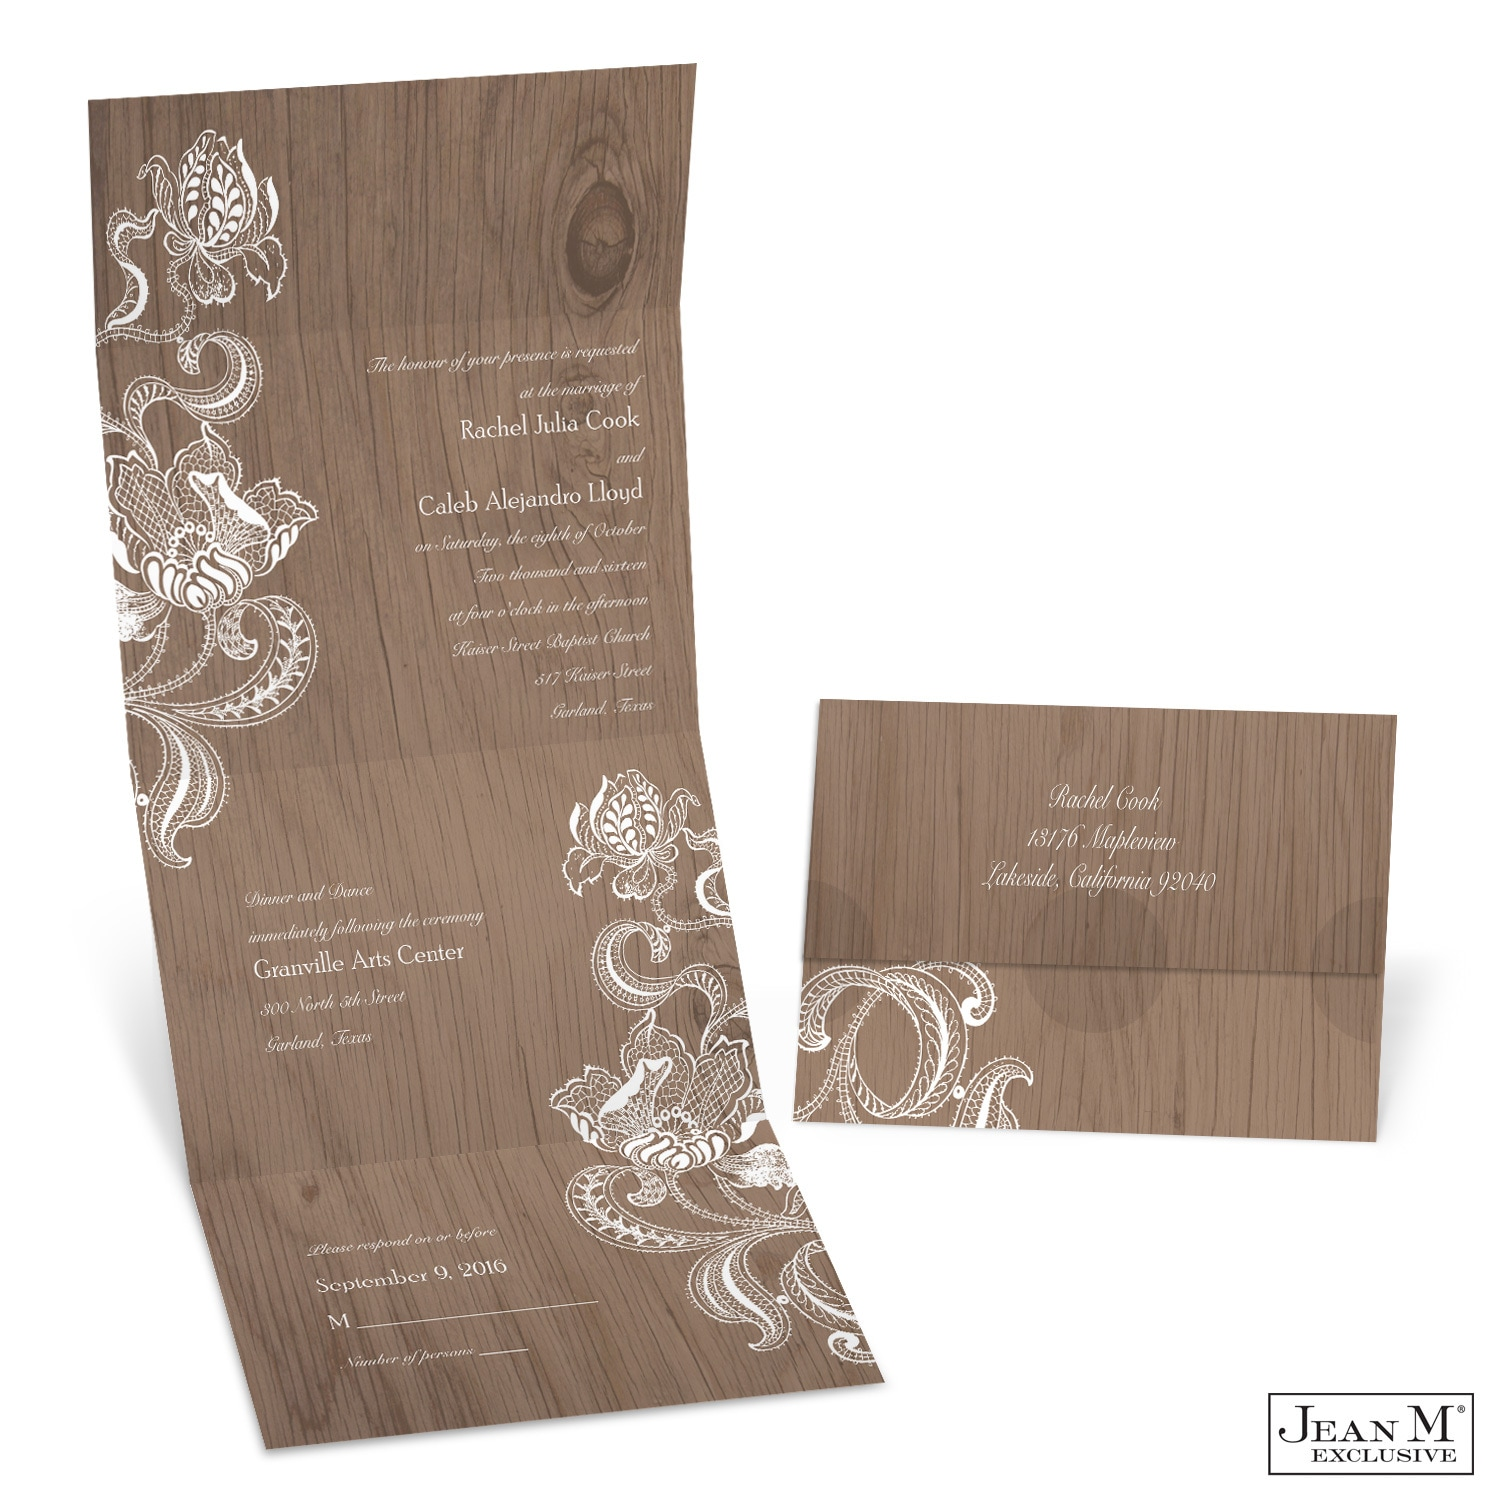 MKFC Lacy Rustic Seal and Send Wedding Invitation wedding invitations michaels Lacy Rustic Seal and Send Wedding Invitation